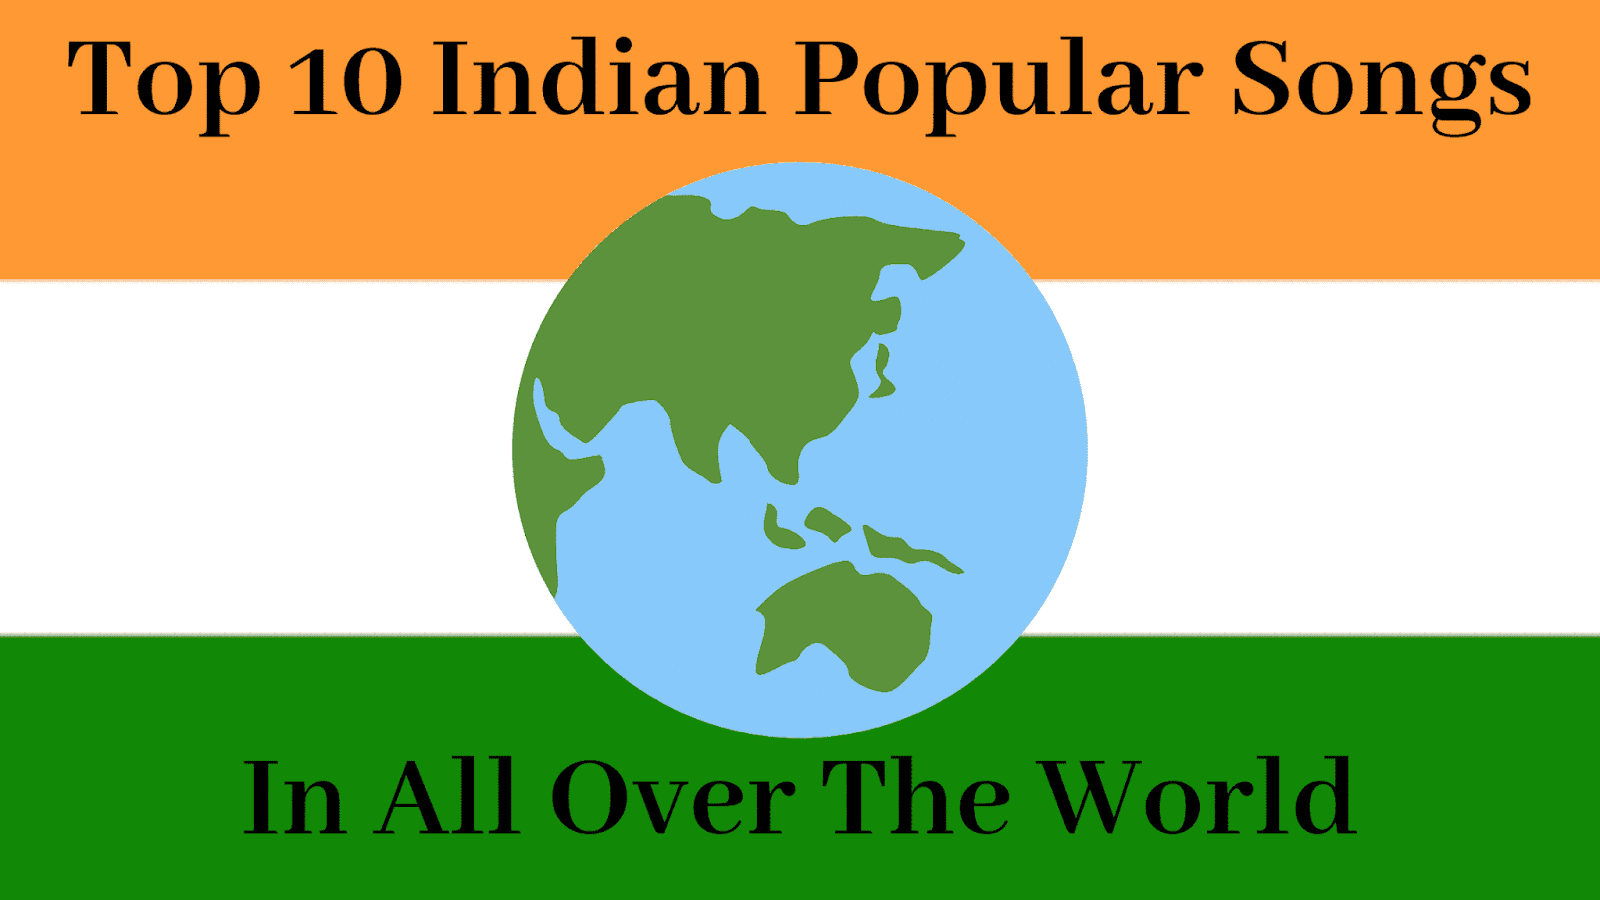 Top 10 Indian Widespread Songs In All Over The World